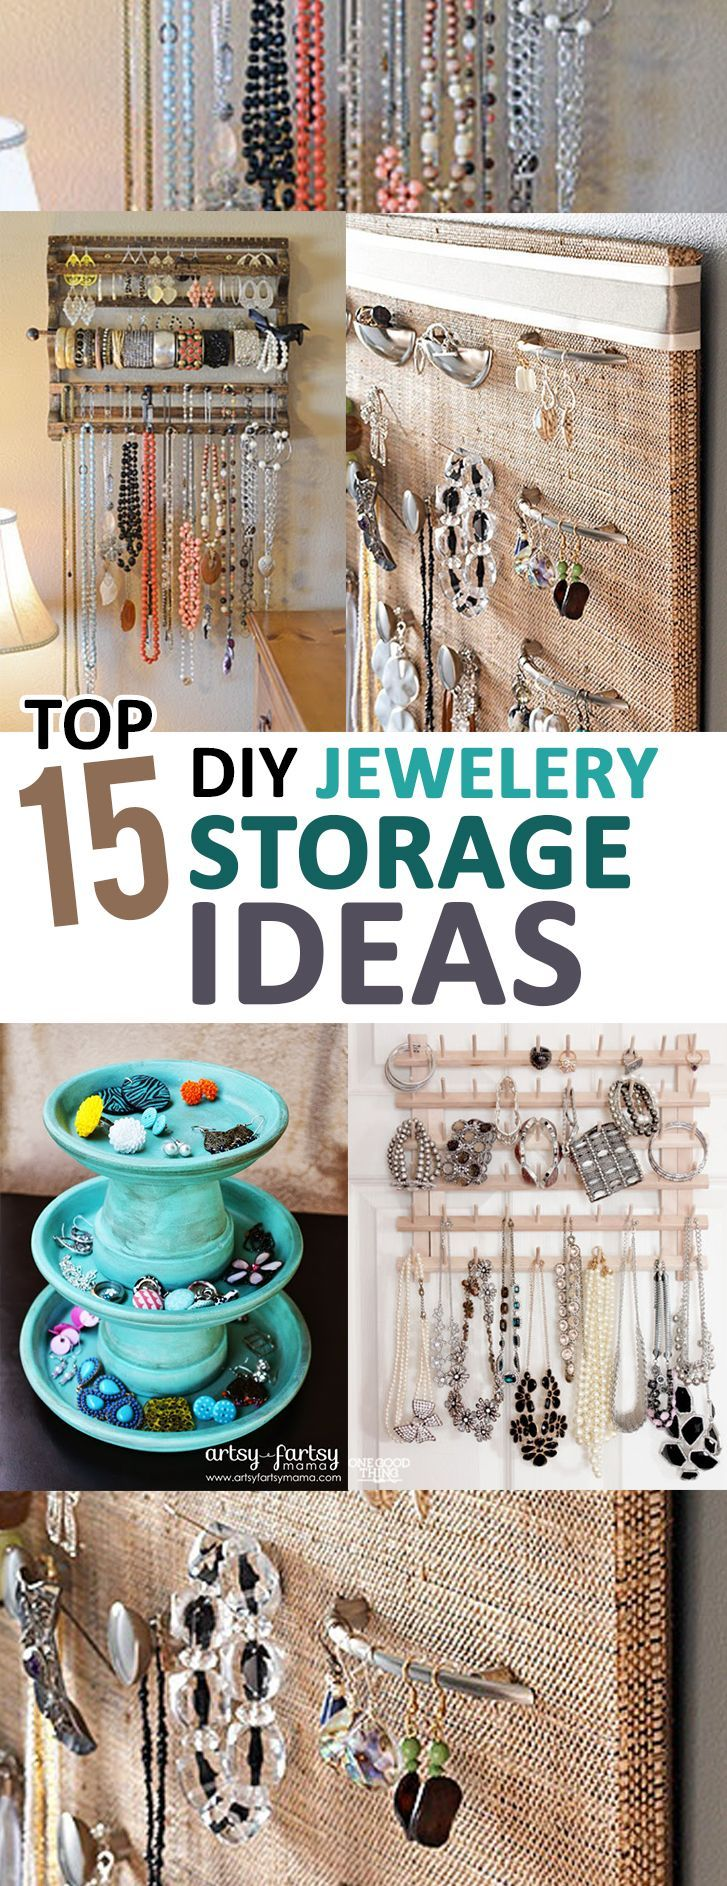 best shelving u cute storage ideas images on pinterest